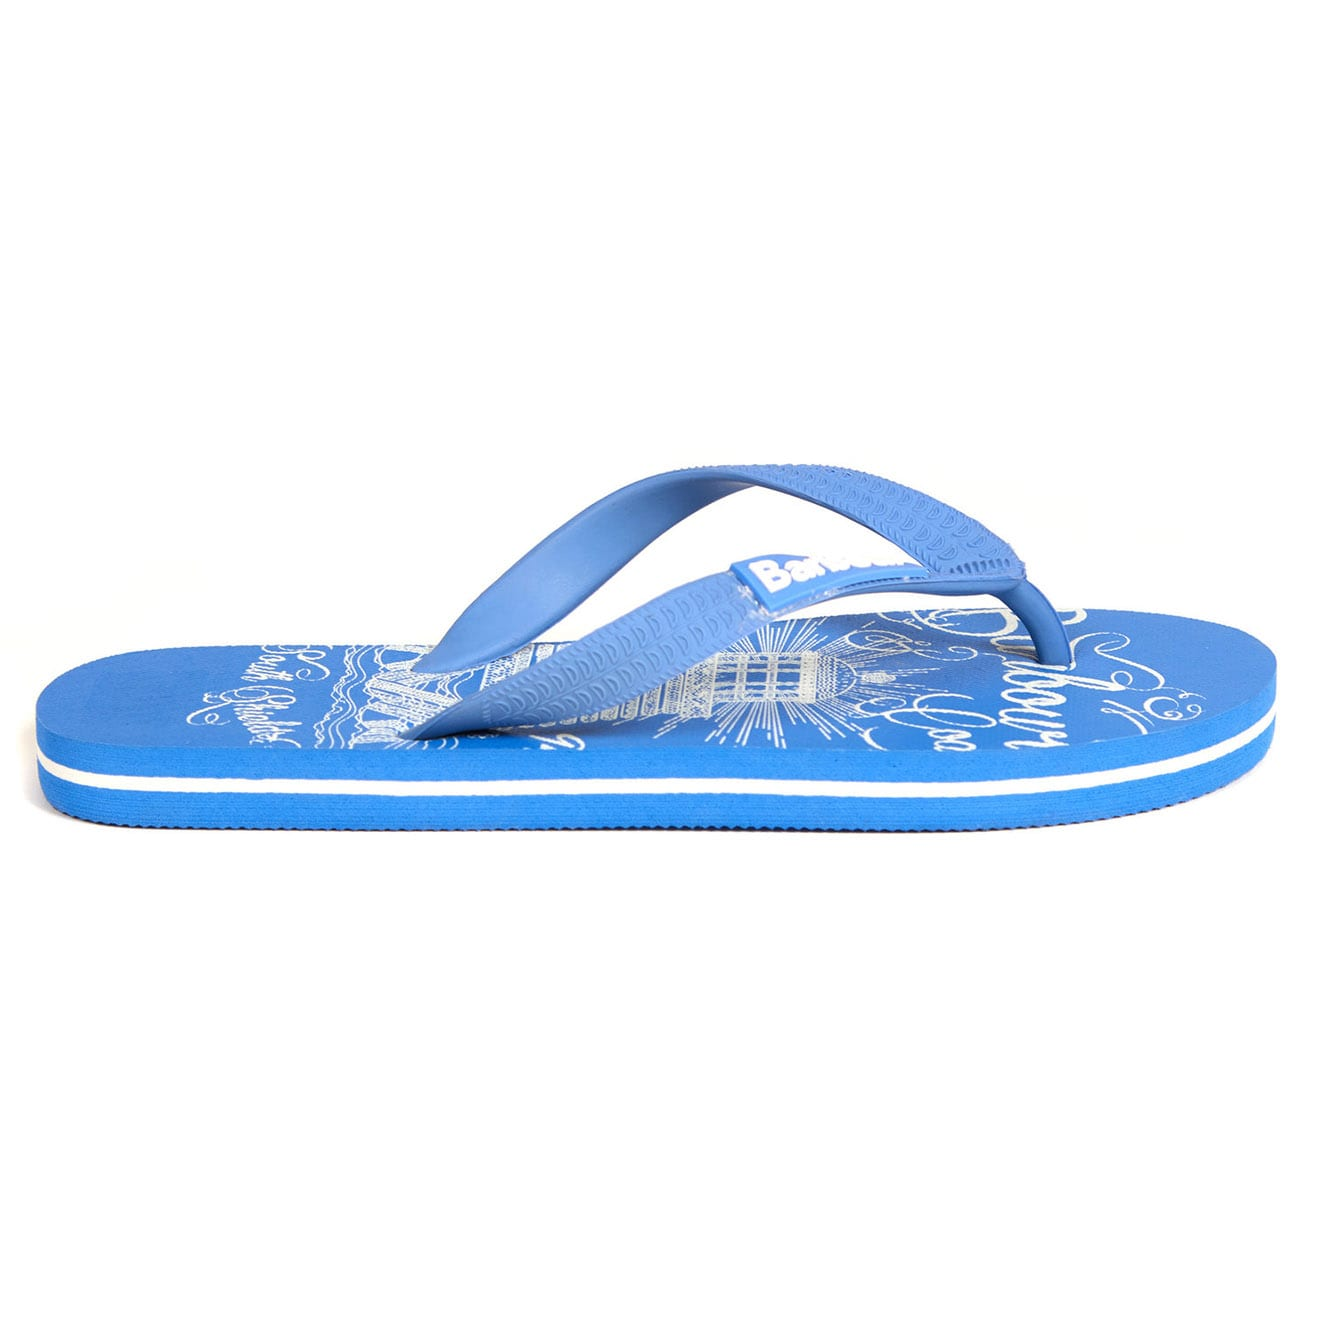 Barbour Womens Beacon Beach Sandal Merina